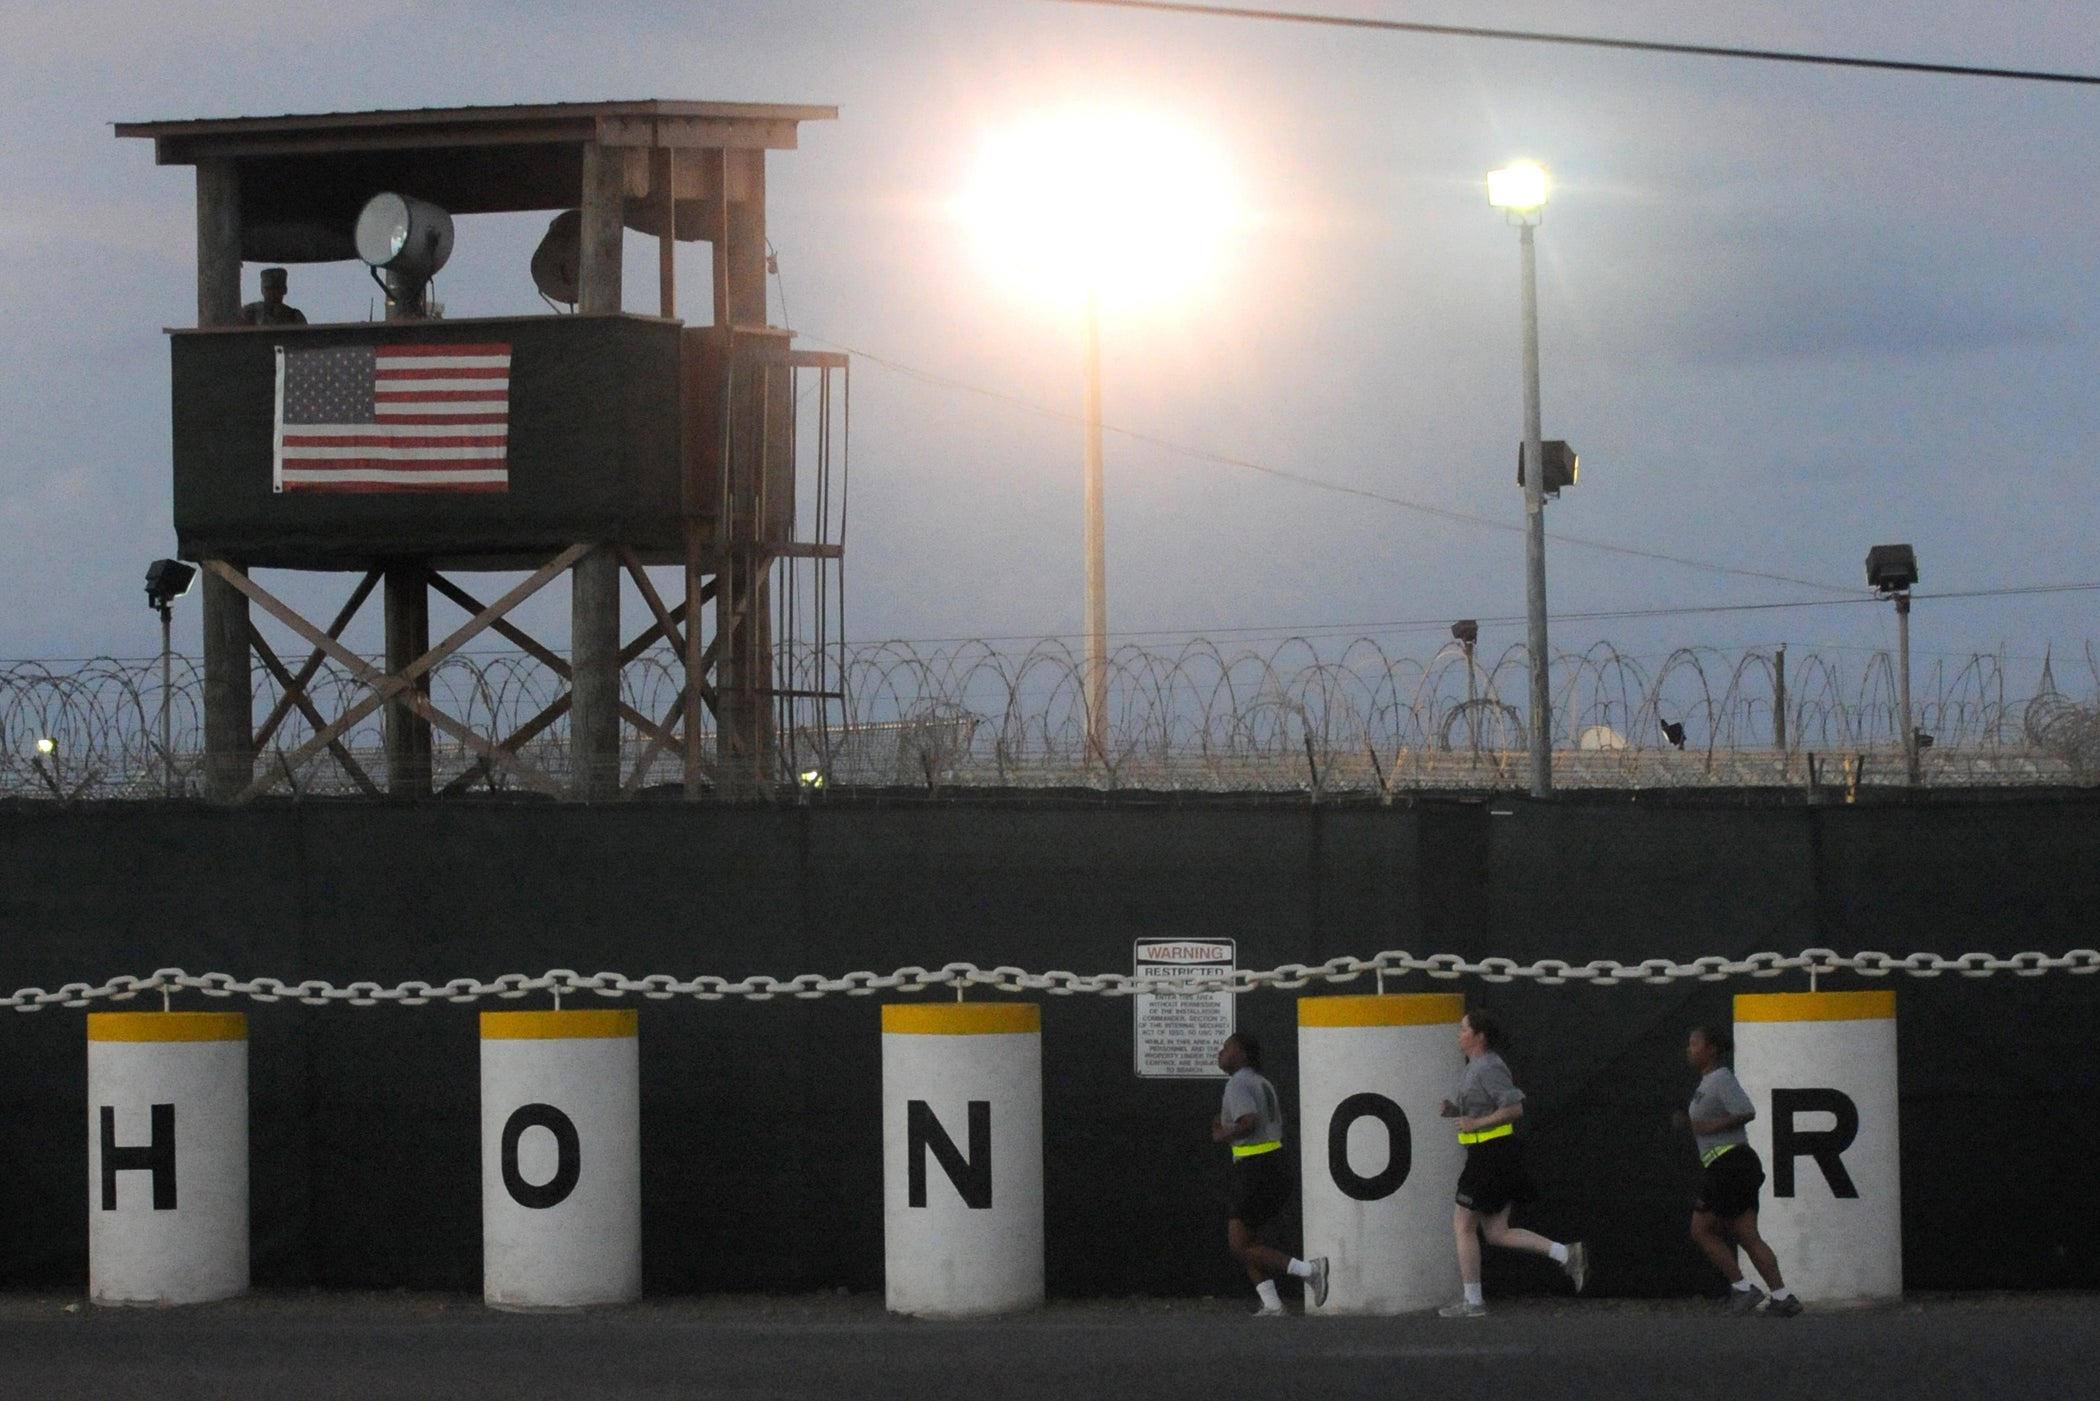 Could Guantanamo Bay Become A Marine Research Center?